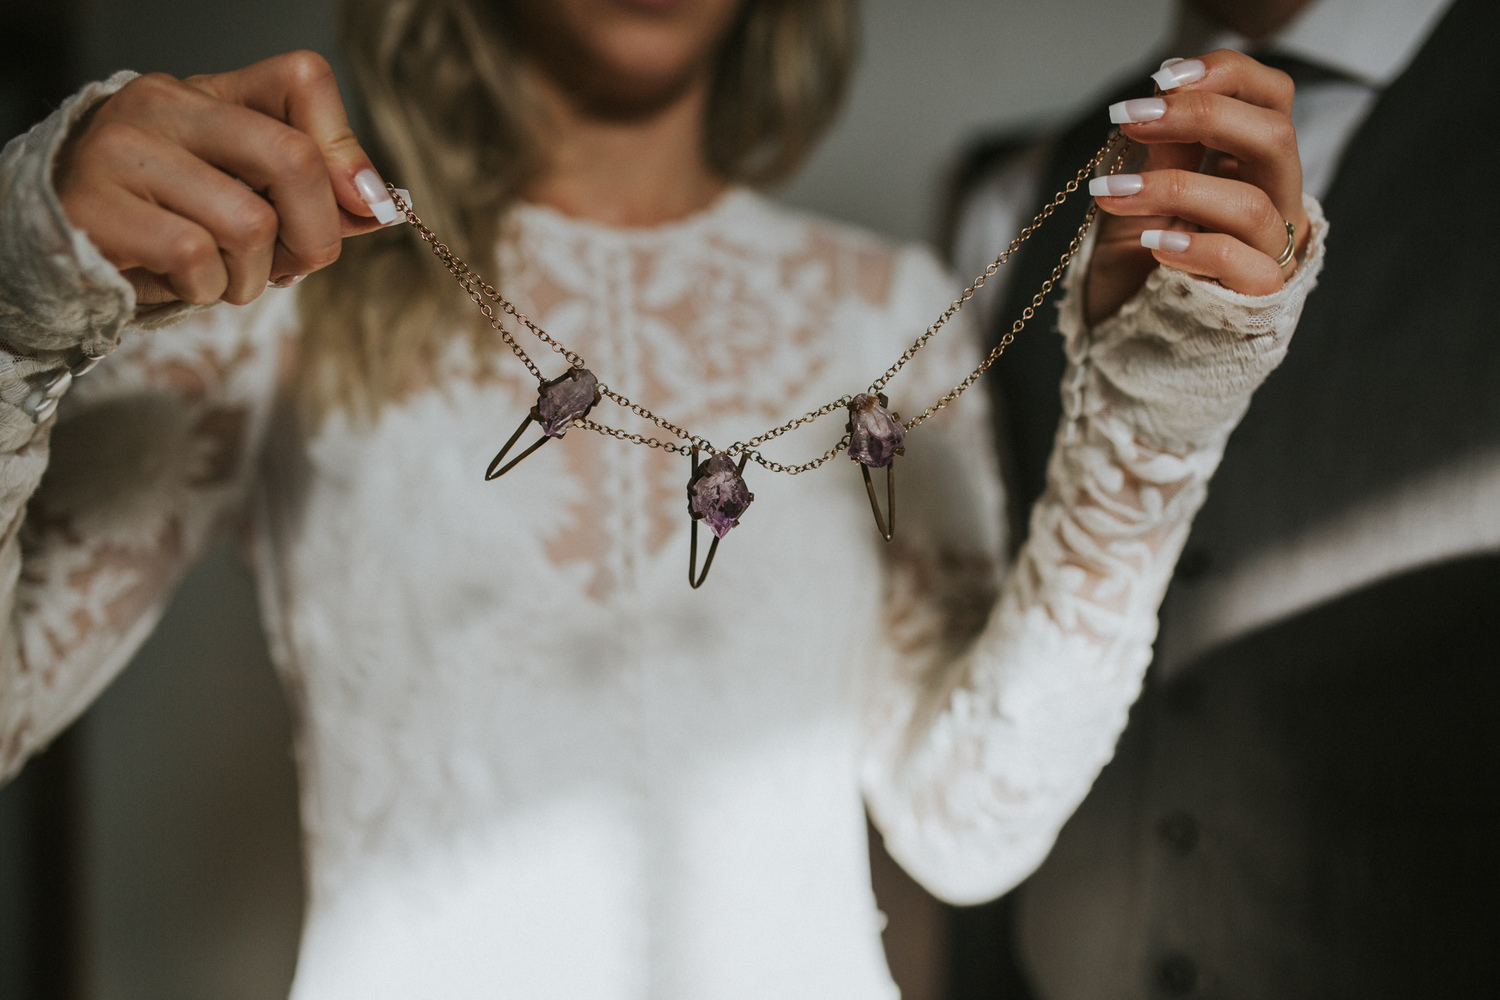 Sisters in Law wedding blog - Featured jewelry photographed by Love Stories Co.